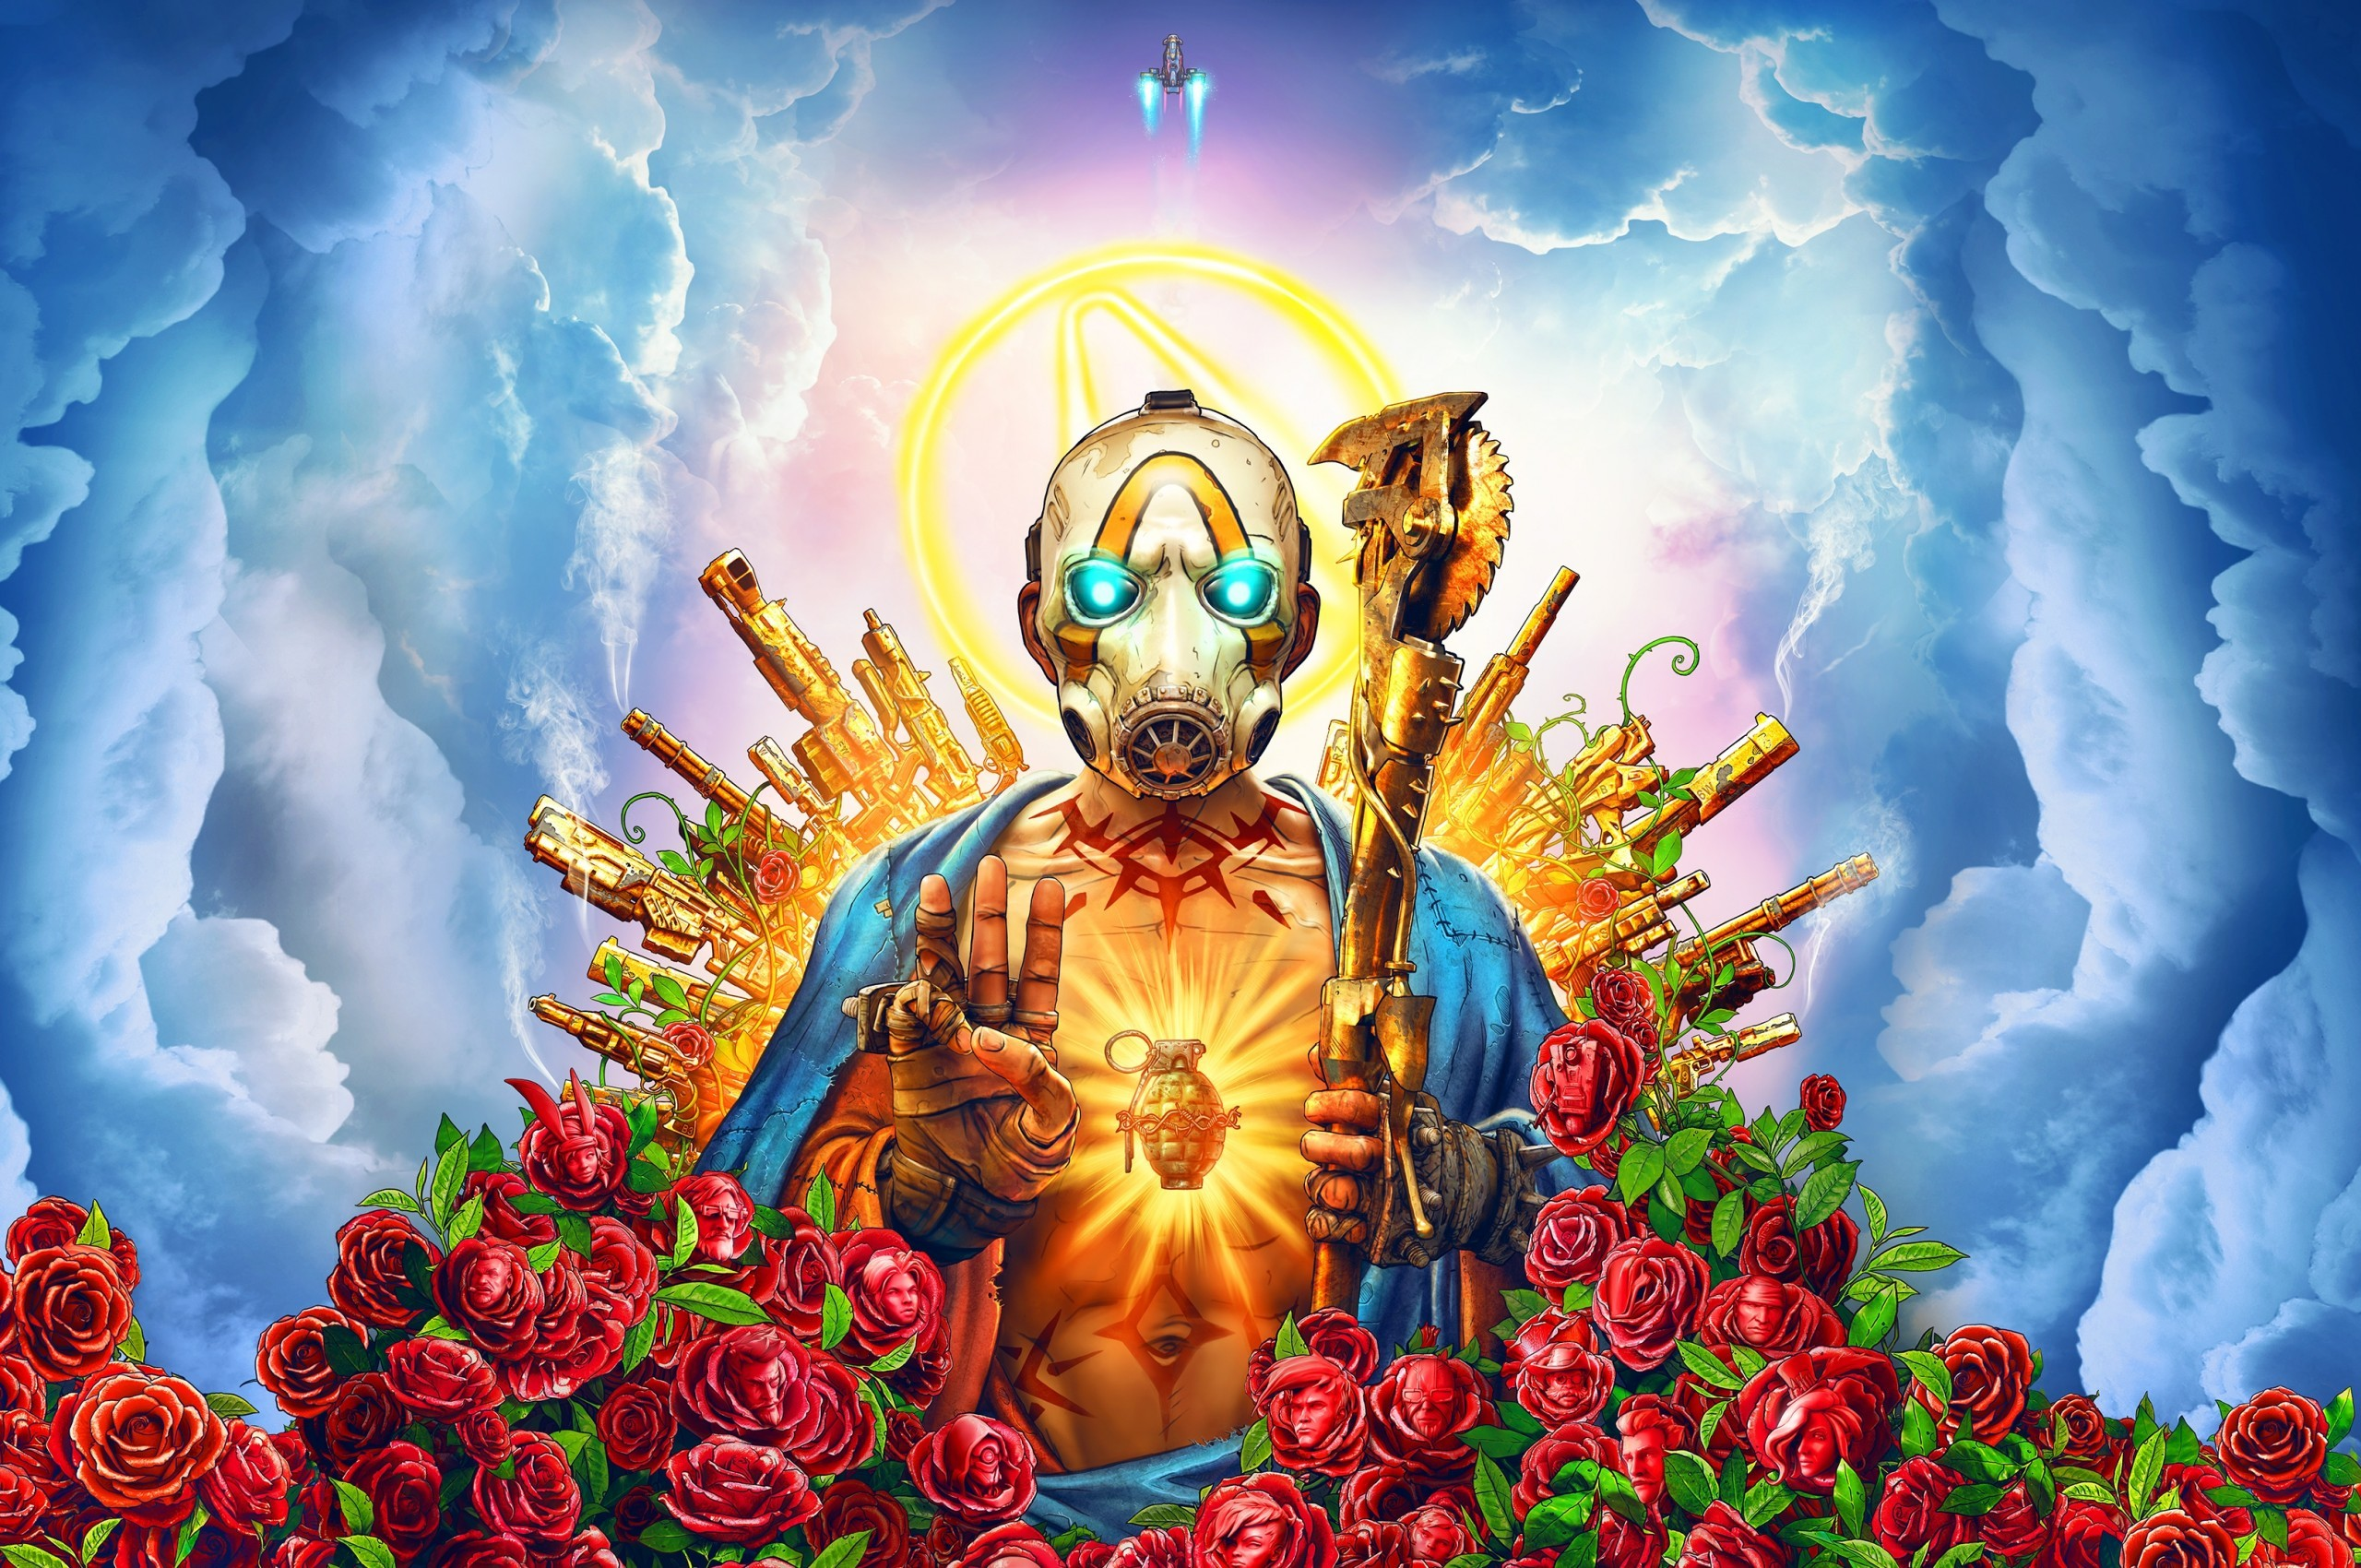 borderlands 3 artwork